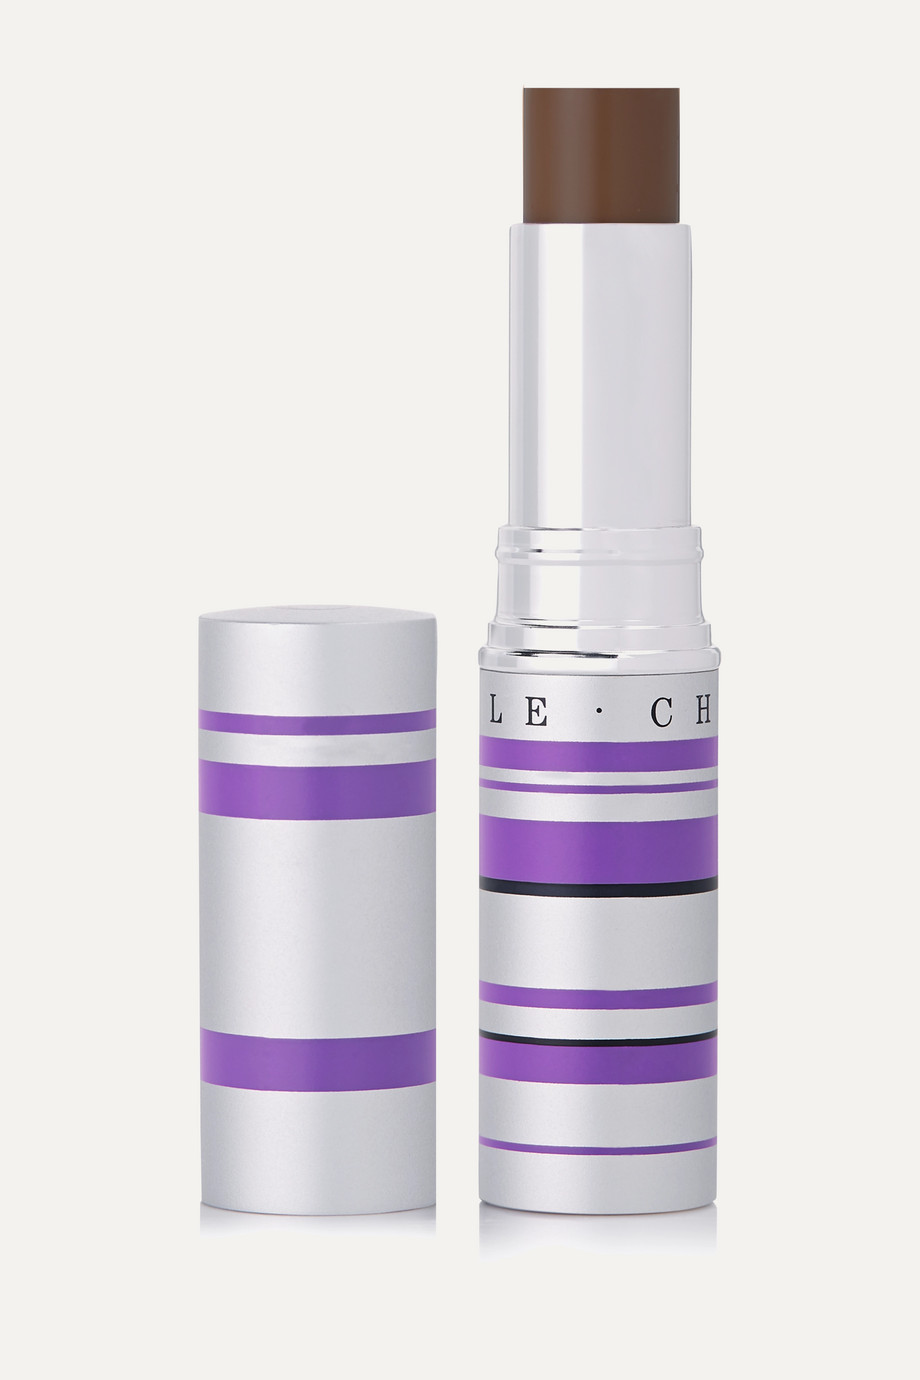 Chantecaille Real Skin + Eye and Face Stick - 10